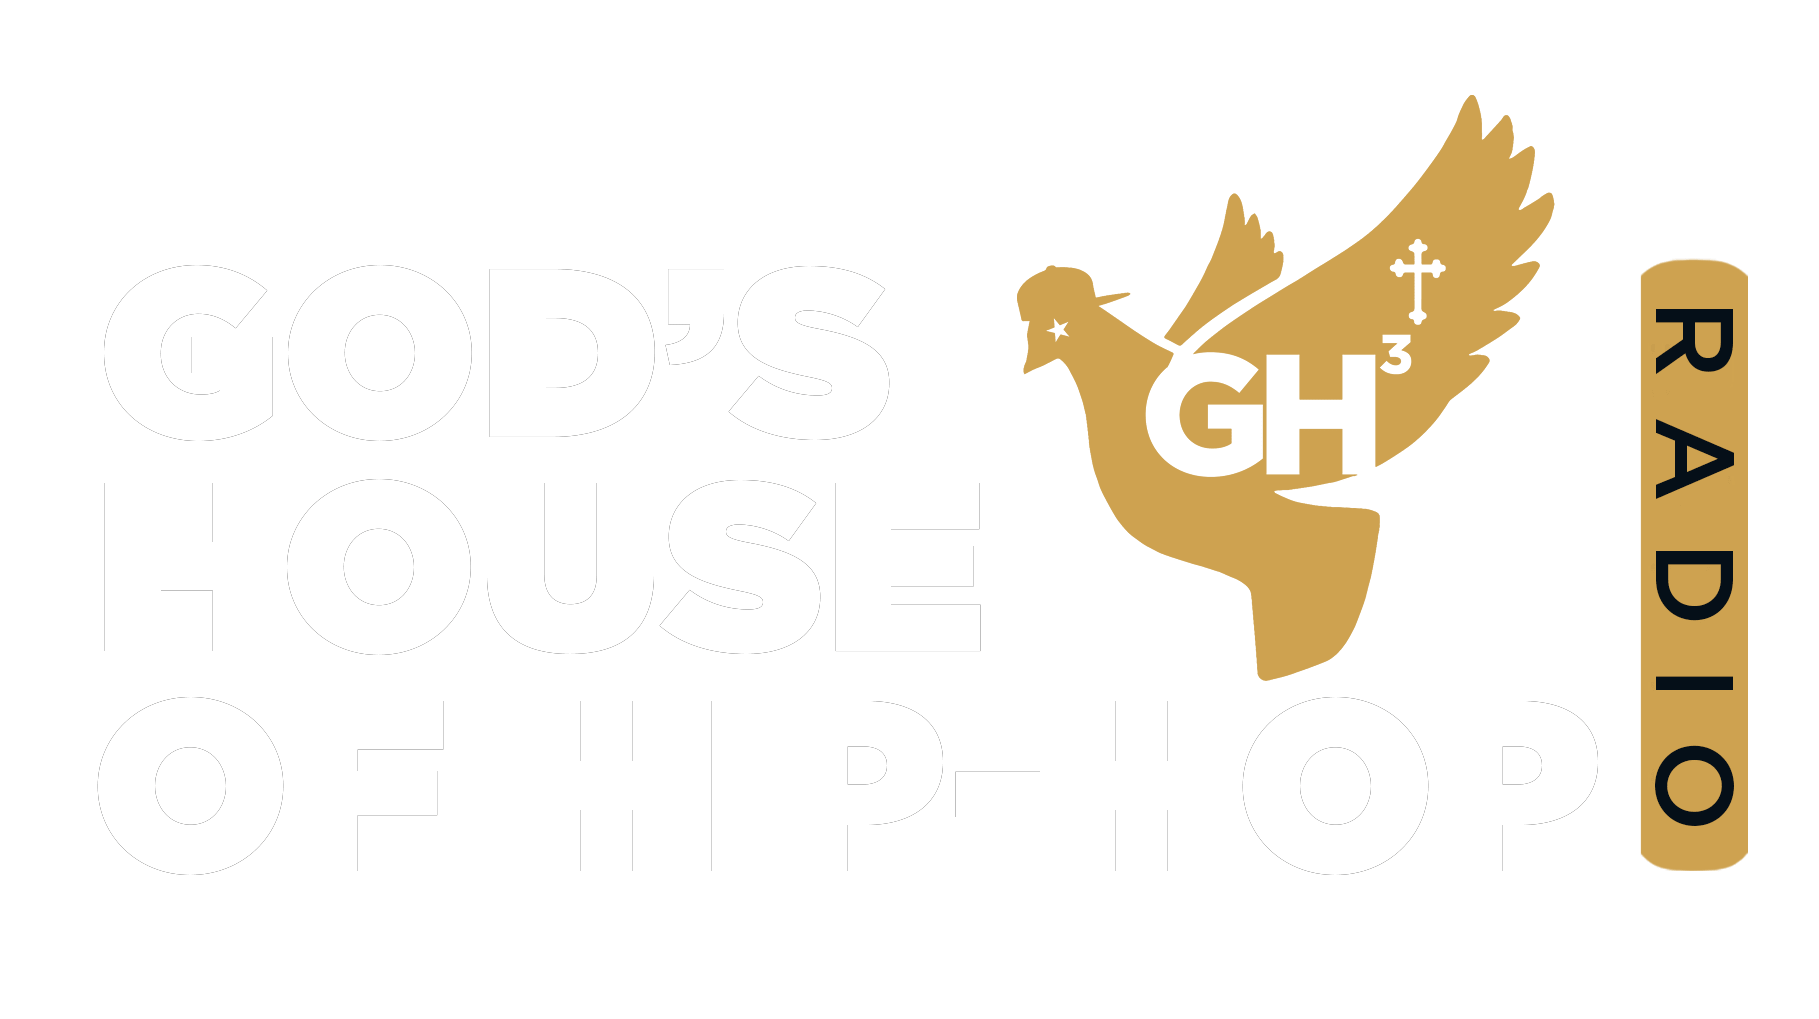 God's House of Hip Hop